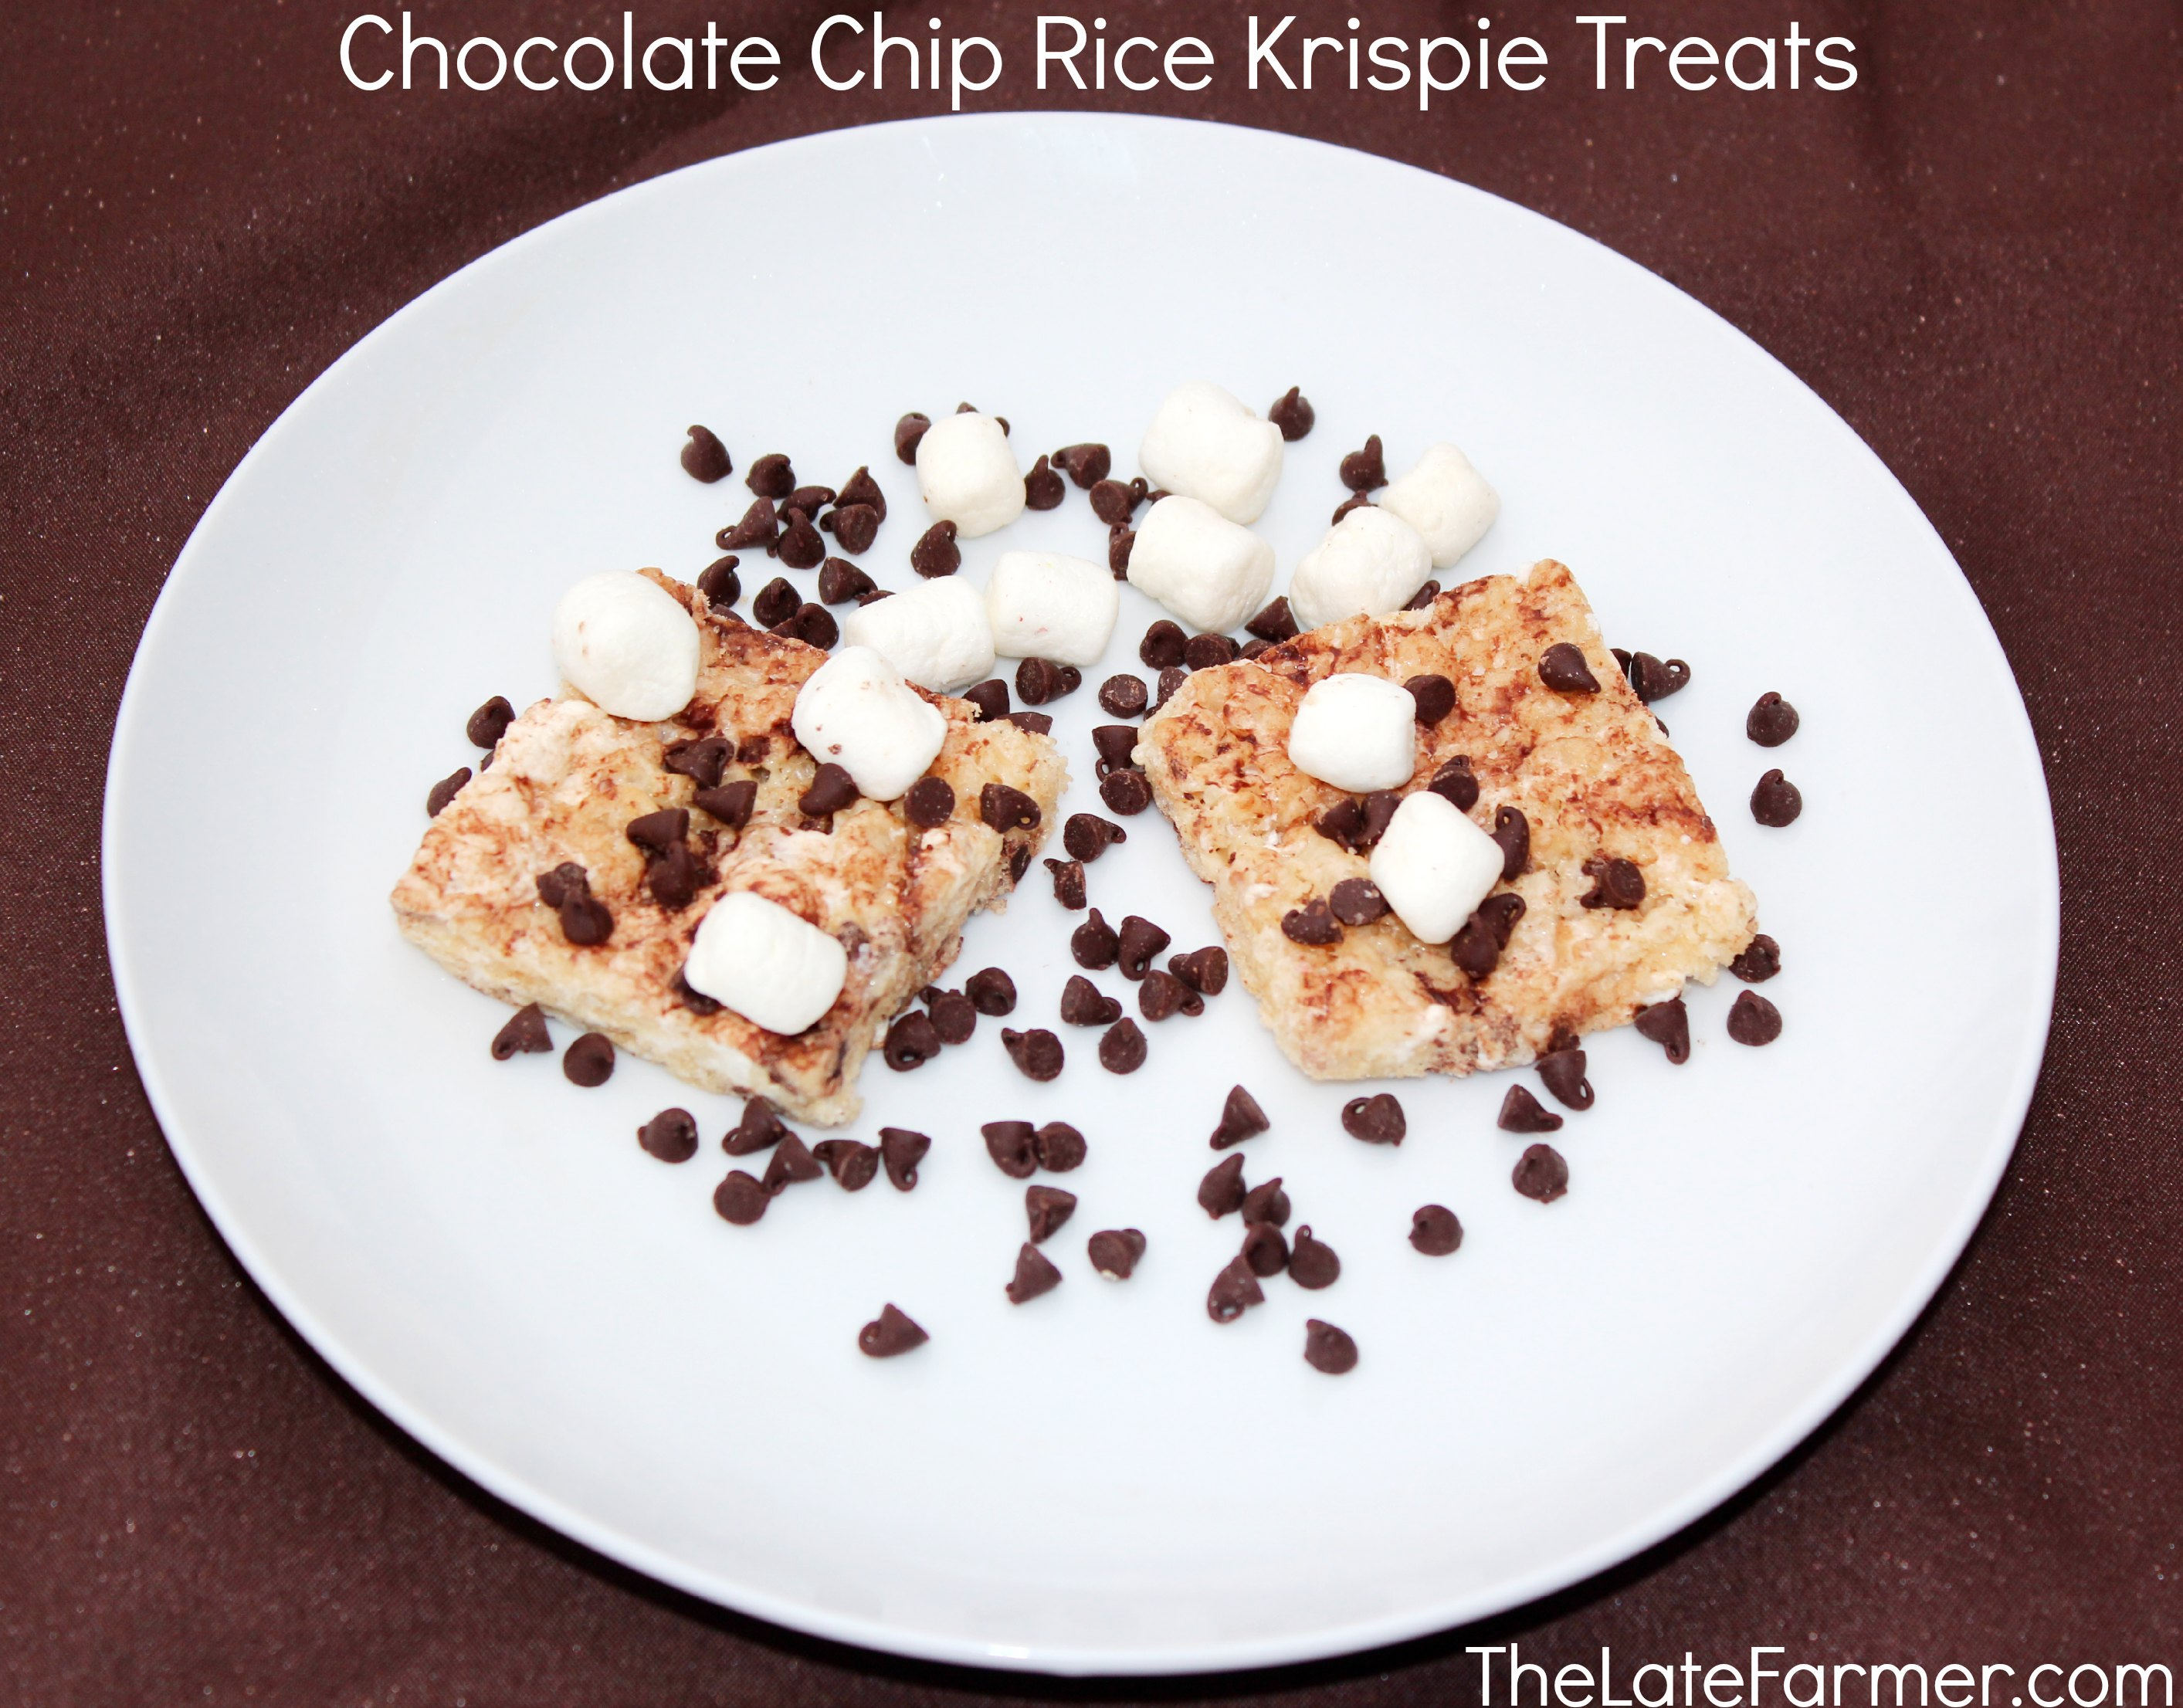 Chocolate Chip Rice Krispie Treats - TheLateFarmer.com